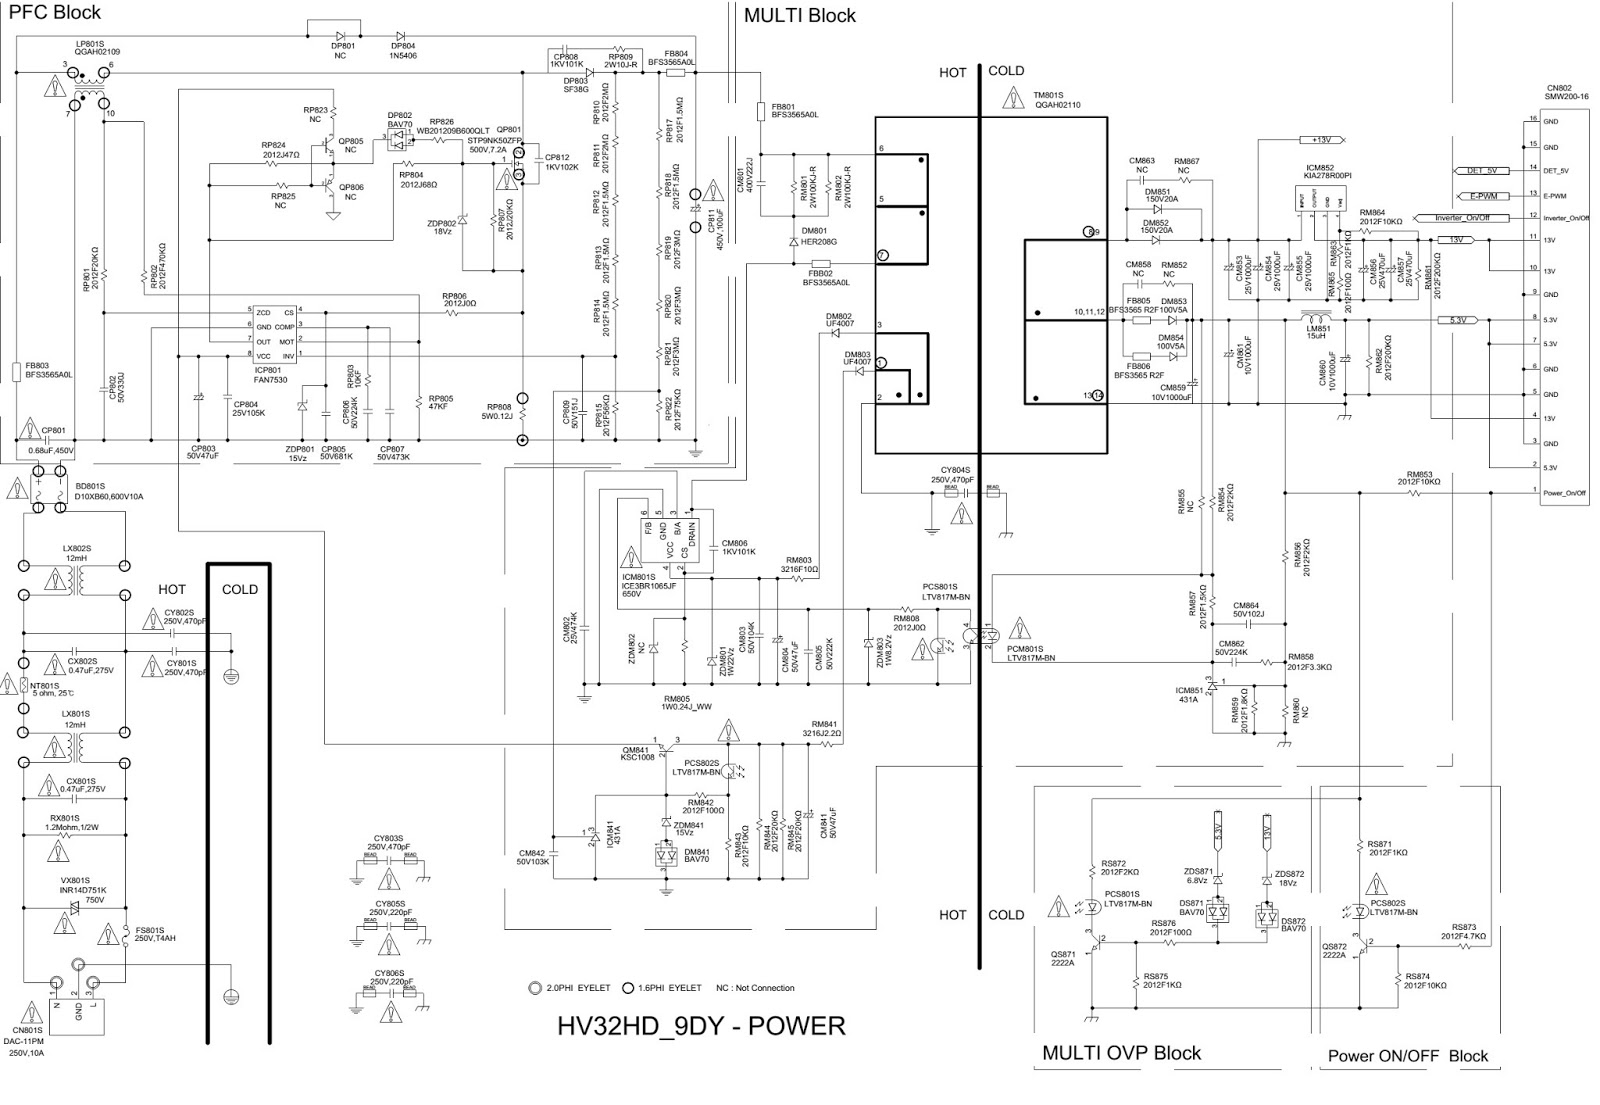 Led Tv Wiring Diagram Great Engine Schematic 120v Free Picture Lcd Fe Diagrams Rh 51 Bildhauer Schaeffler De Samsung 12v